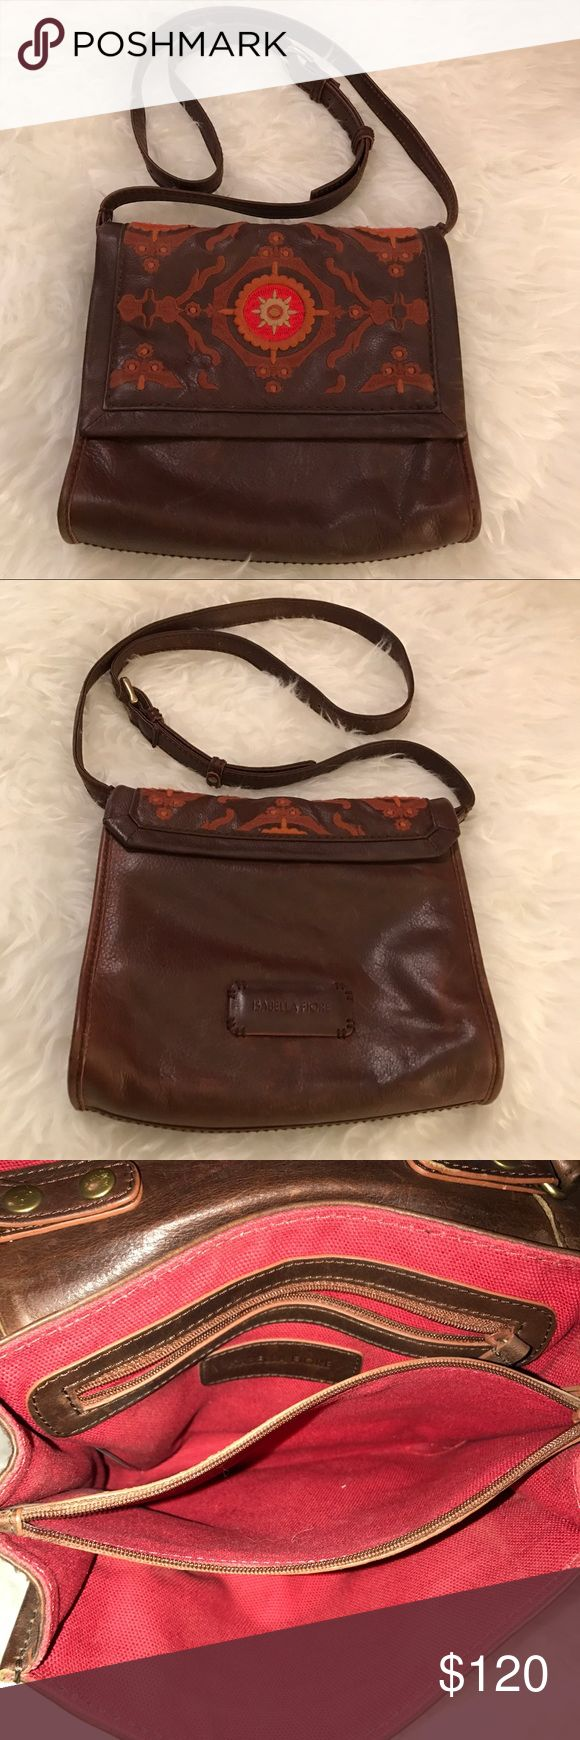 Isabella Fiore Brown Crossbody Coachella Bag Cute brown Leather Isabella Fiore Crossbody. This is a magnetic closure Purse. Long straps. Super cute and good preloved condition. Has some minor scratches (refer to the photo up top) but unnoticeable unless the flash is on. It looks super 70's and very Coachella feel! Interior is great condition and has a zipper pocket and has 4 pockets (2 zipper and two open) Fits wallet, phone and little makeup! Just trying to save for our wedding next year…